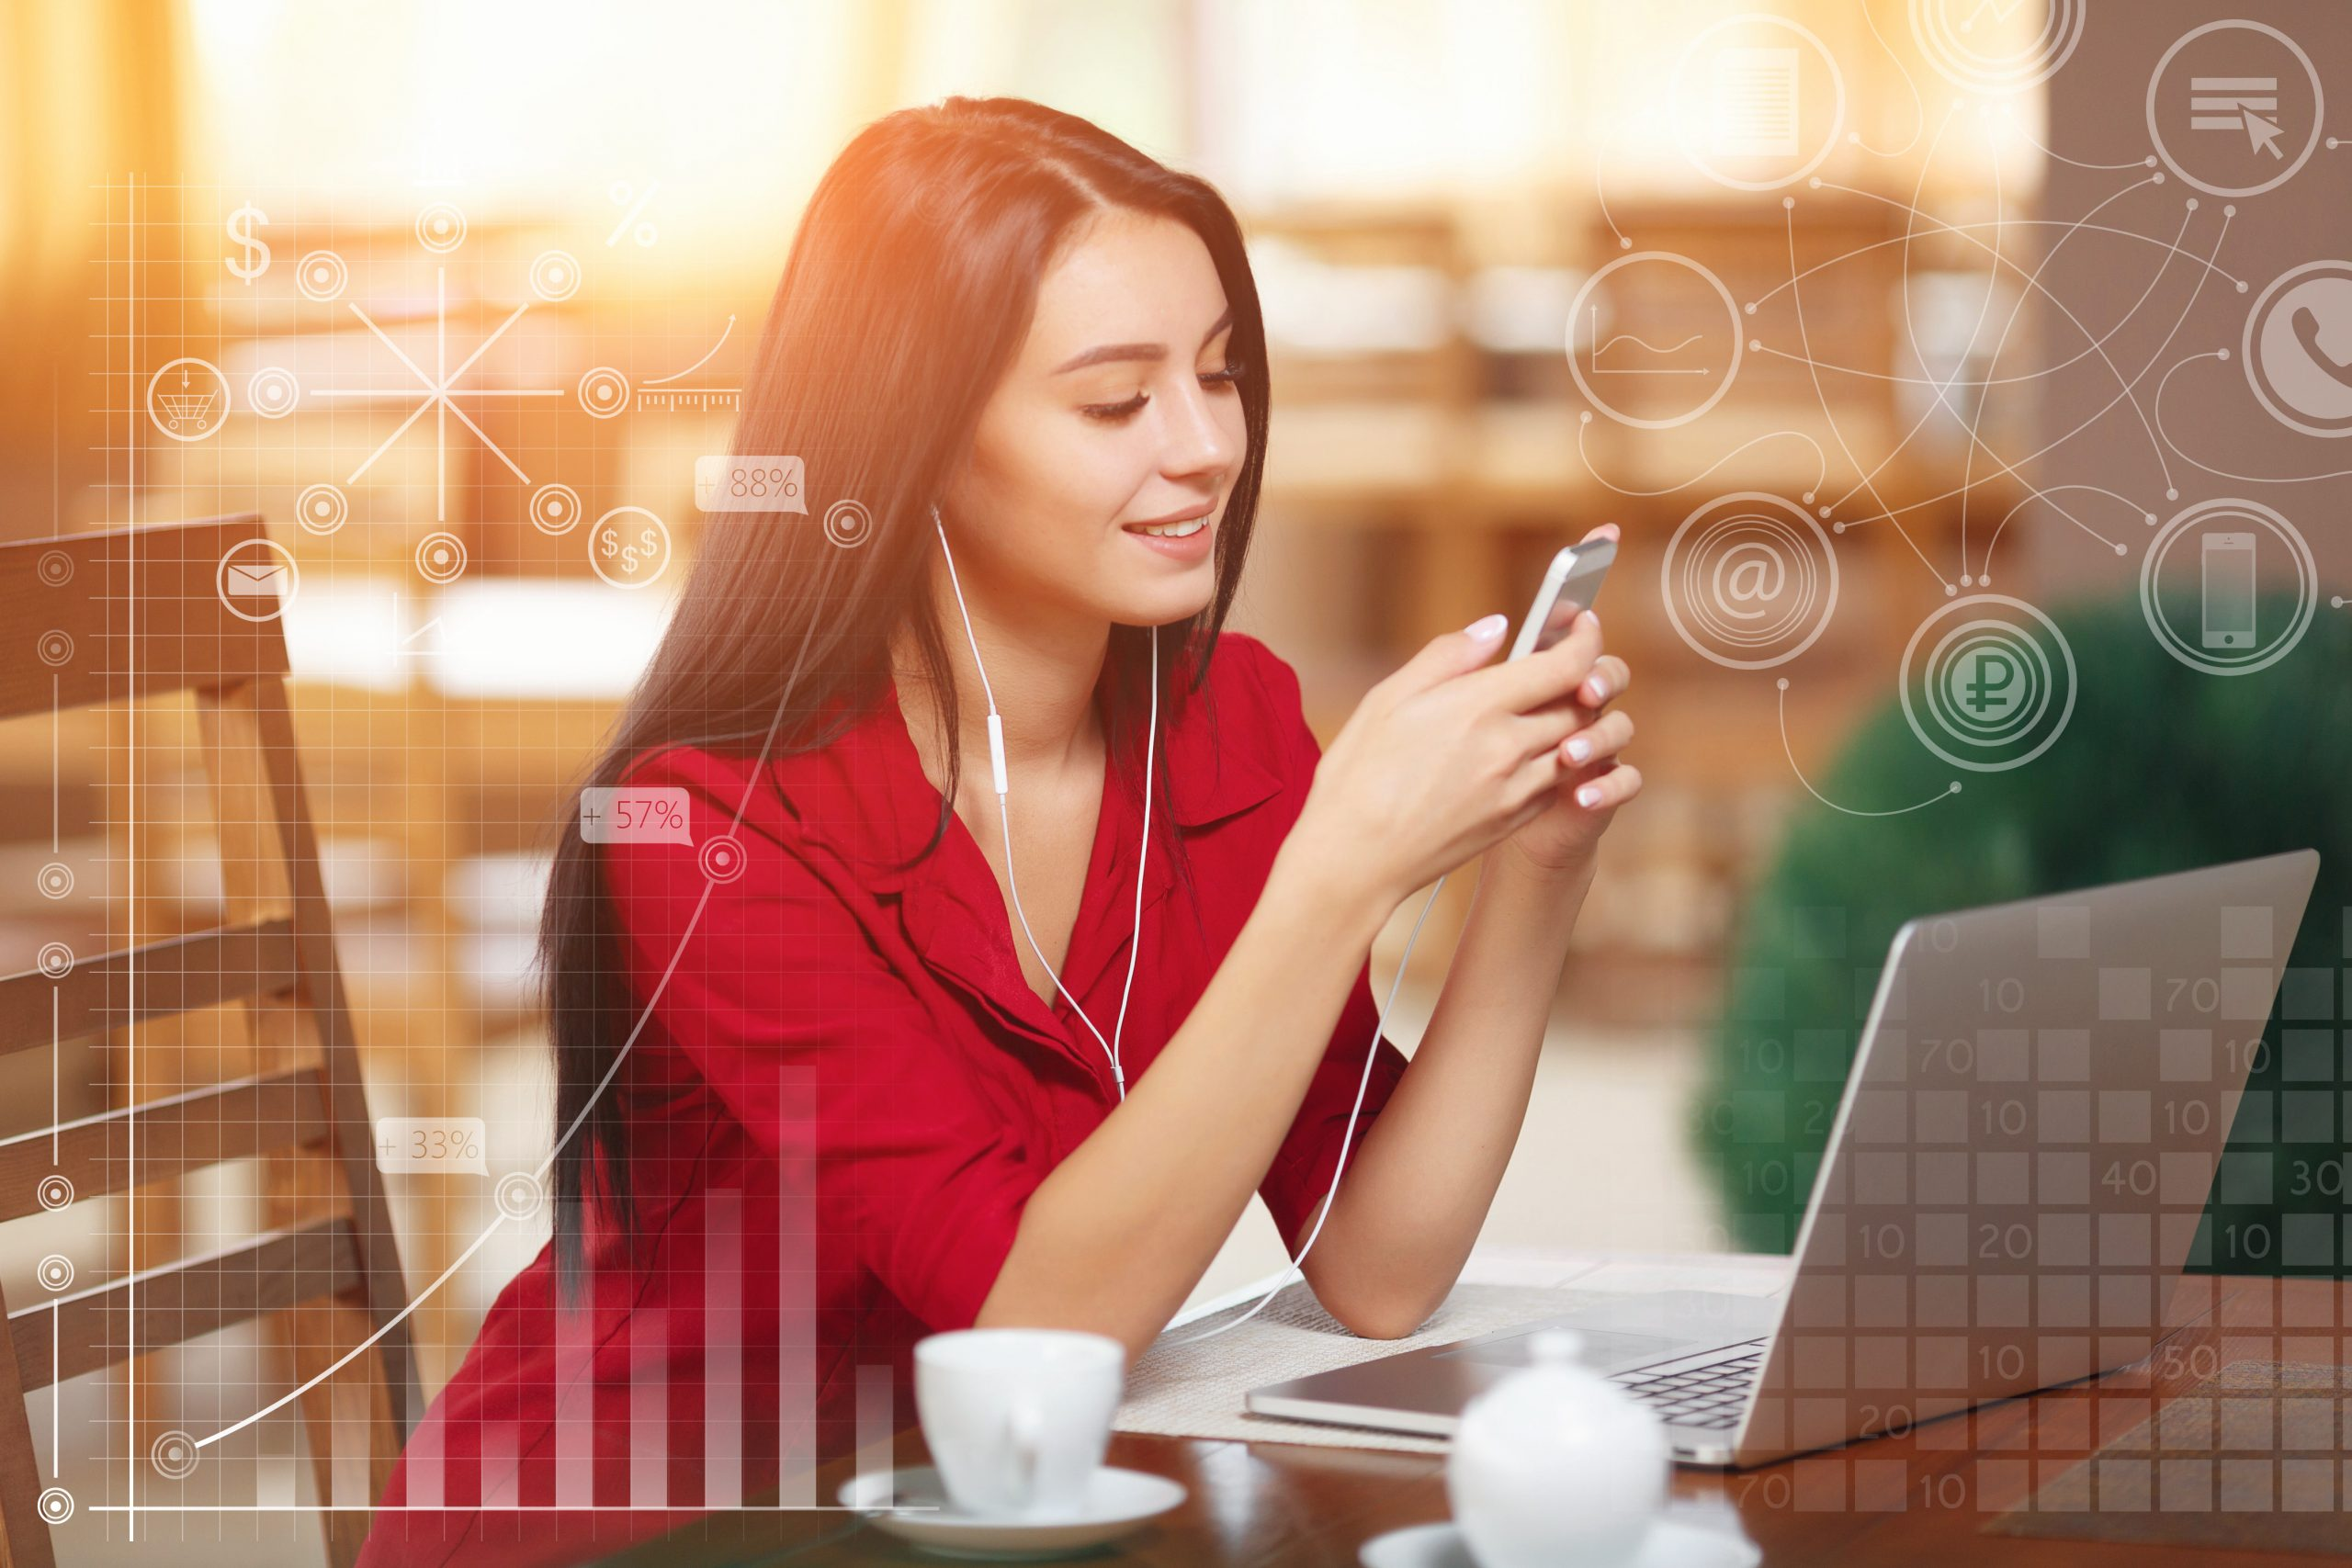 Customers Want Instant, Seamless & Personalized Experiences